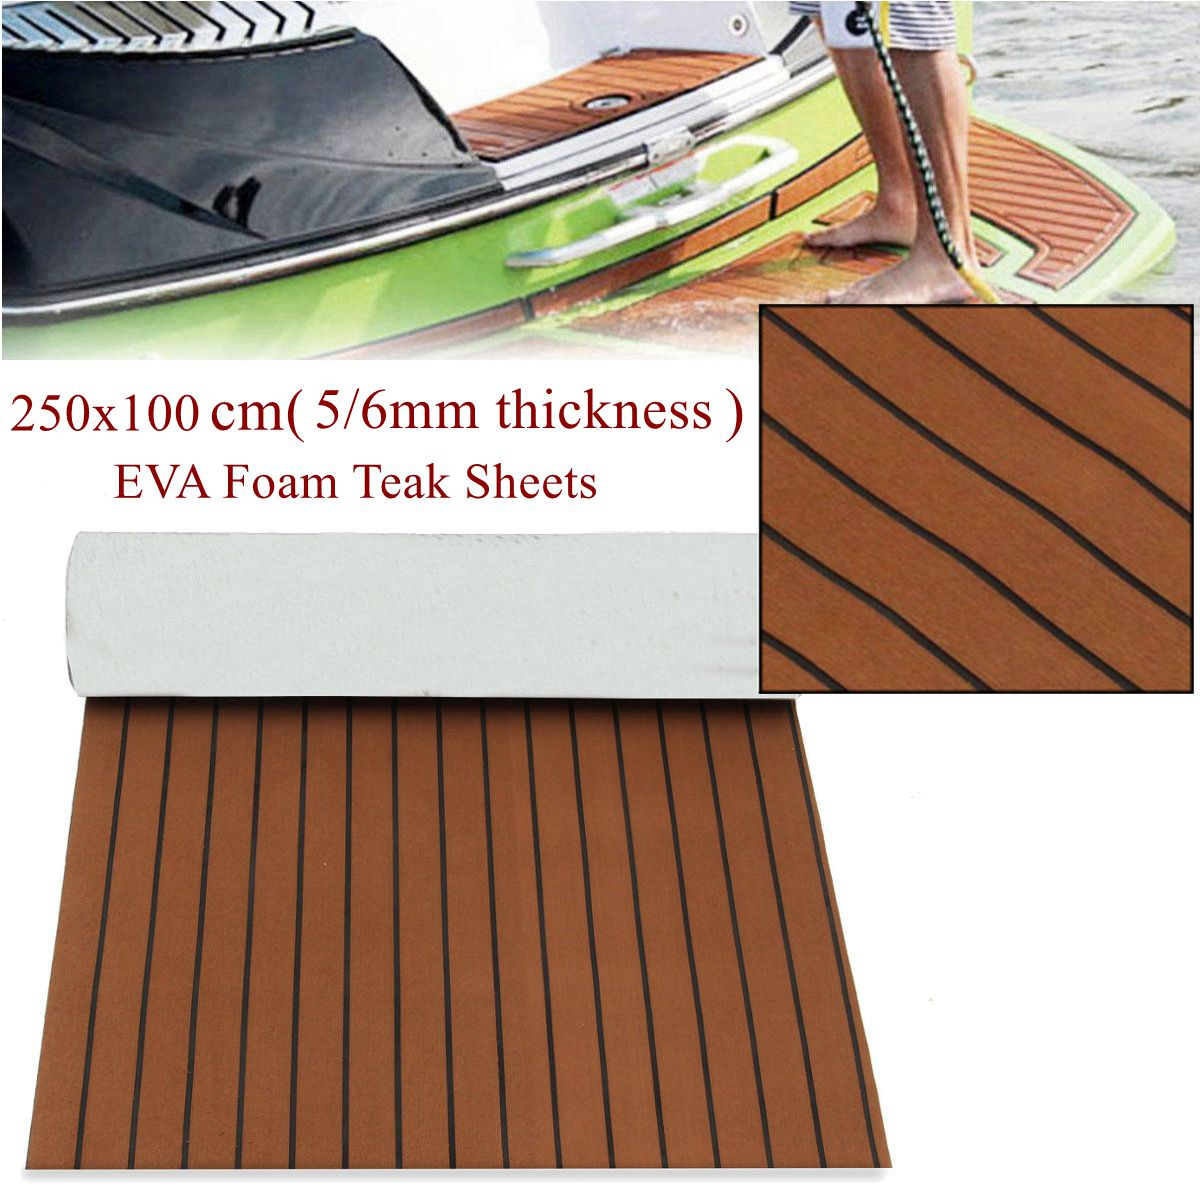 Self-Adhesive 2500x1000x6mm Thickness EVA Foam Faux Teak Decking Sheet Dark Brown Marine Boat DIY Car Protective Floor Carpet